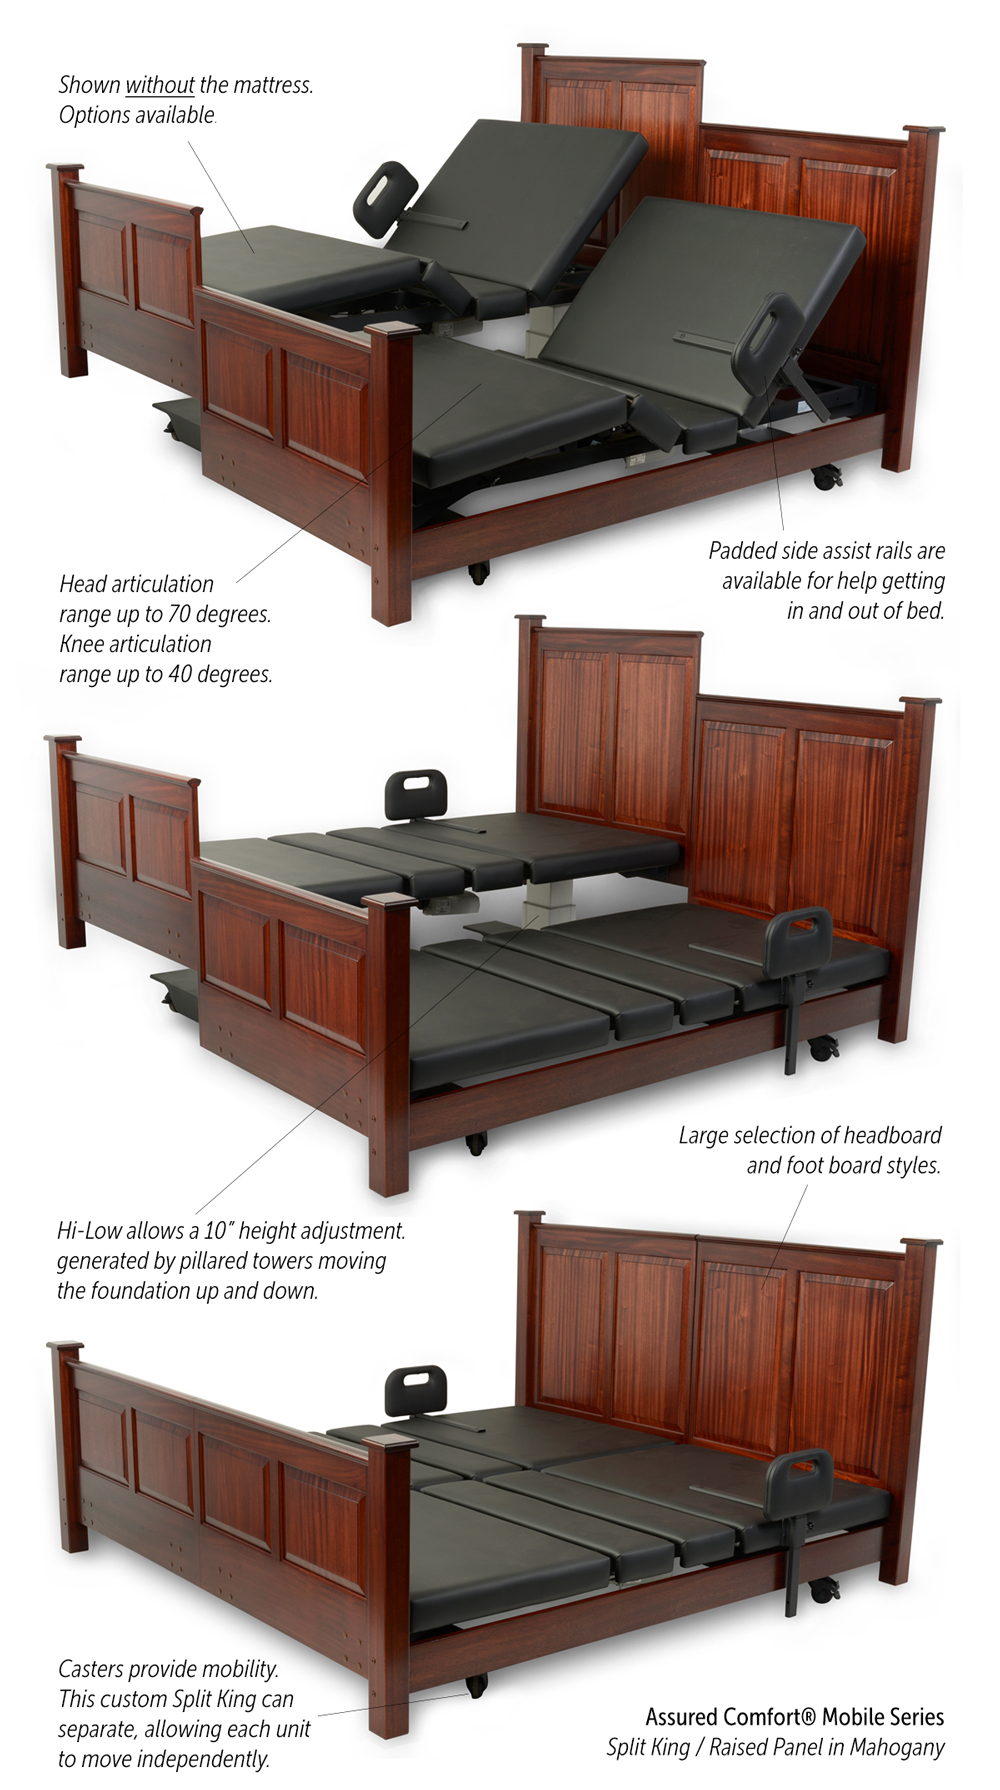 Assured Comfort Hi-Low Adjustable Beds - Mobile Series - Custom Split King